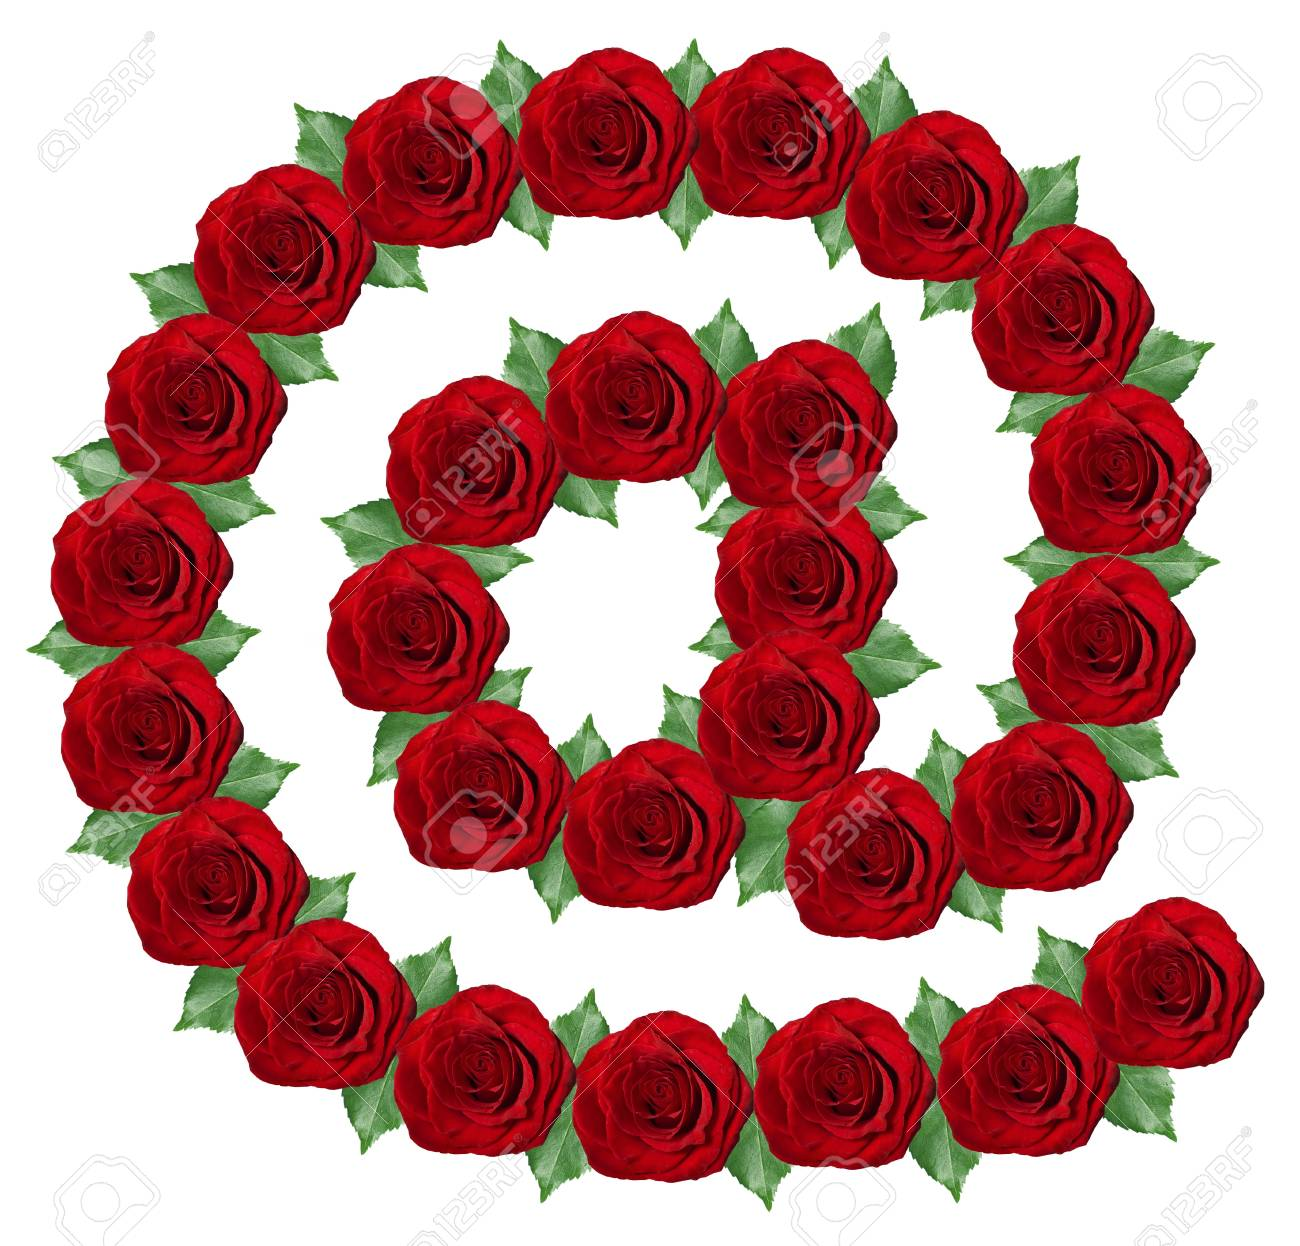 E-mail symbol made from red roses and green leaves  isolated on a white background Stock Photo - 17004413